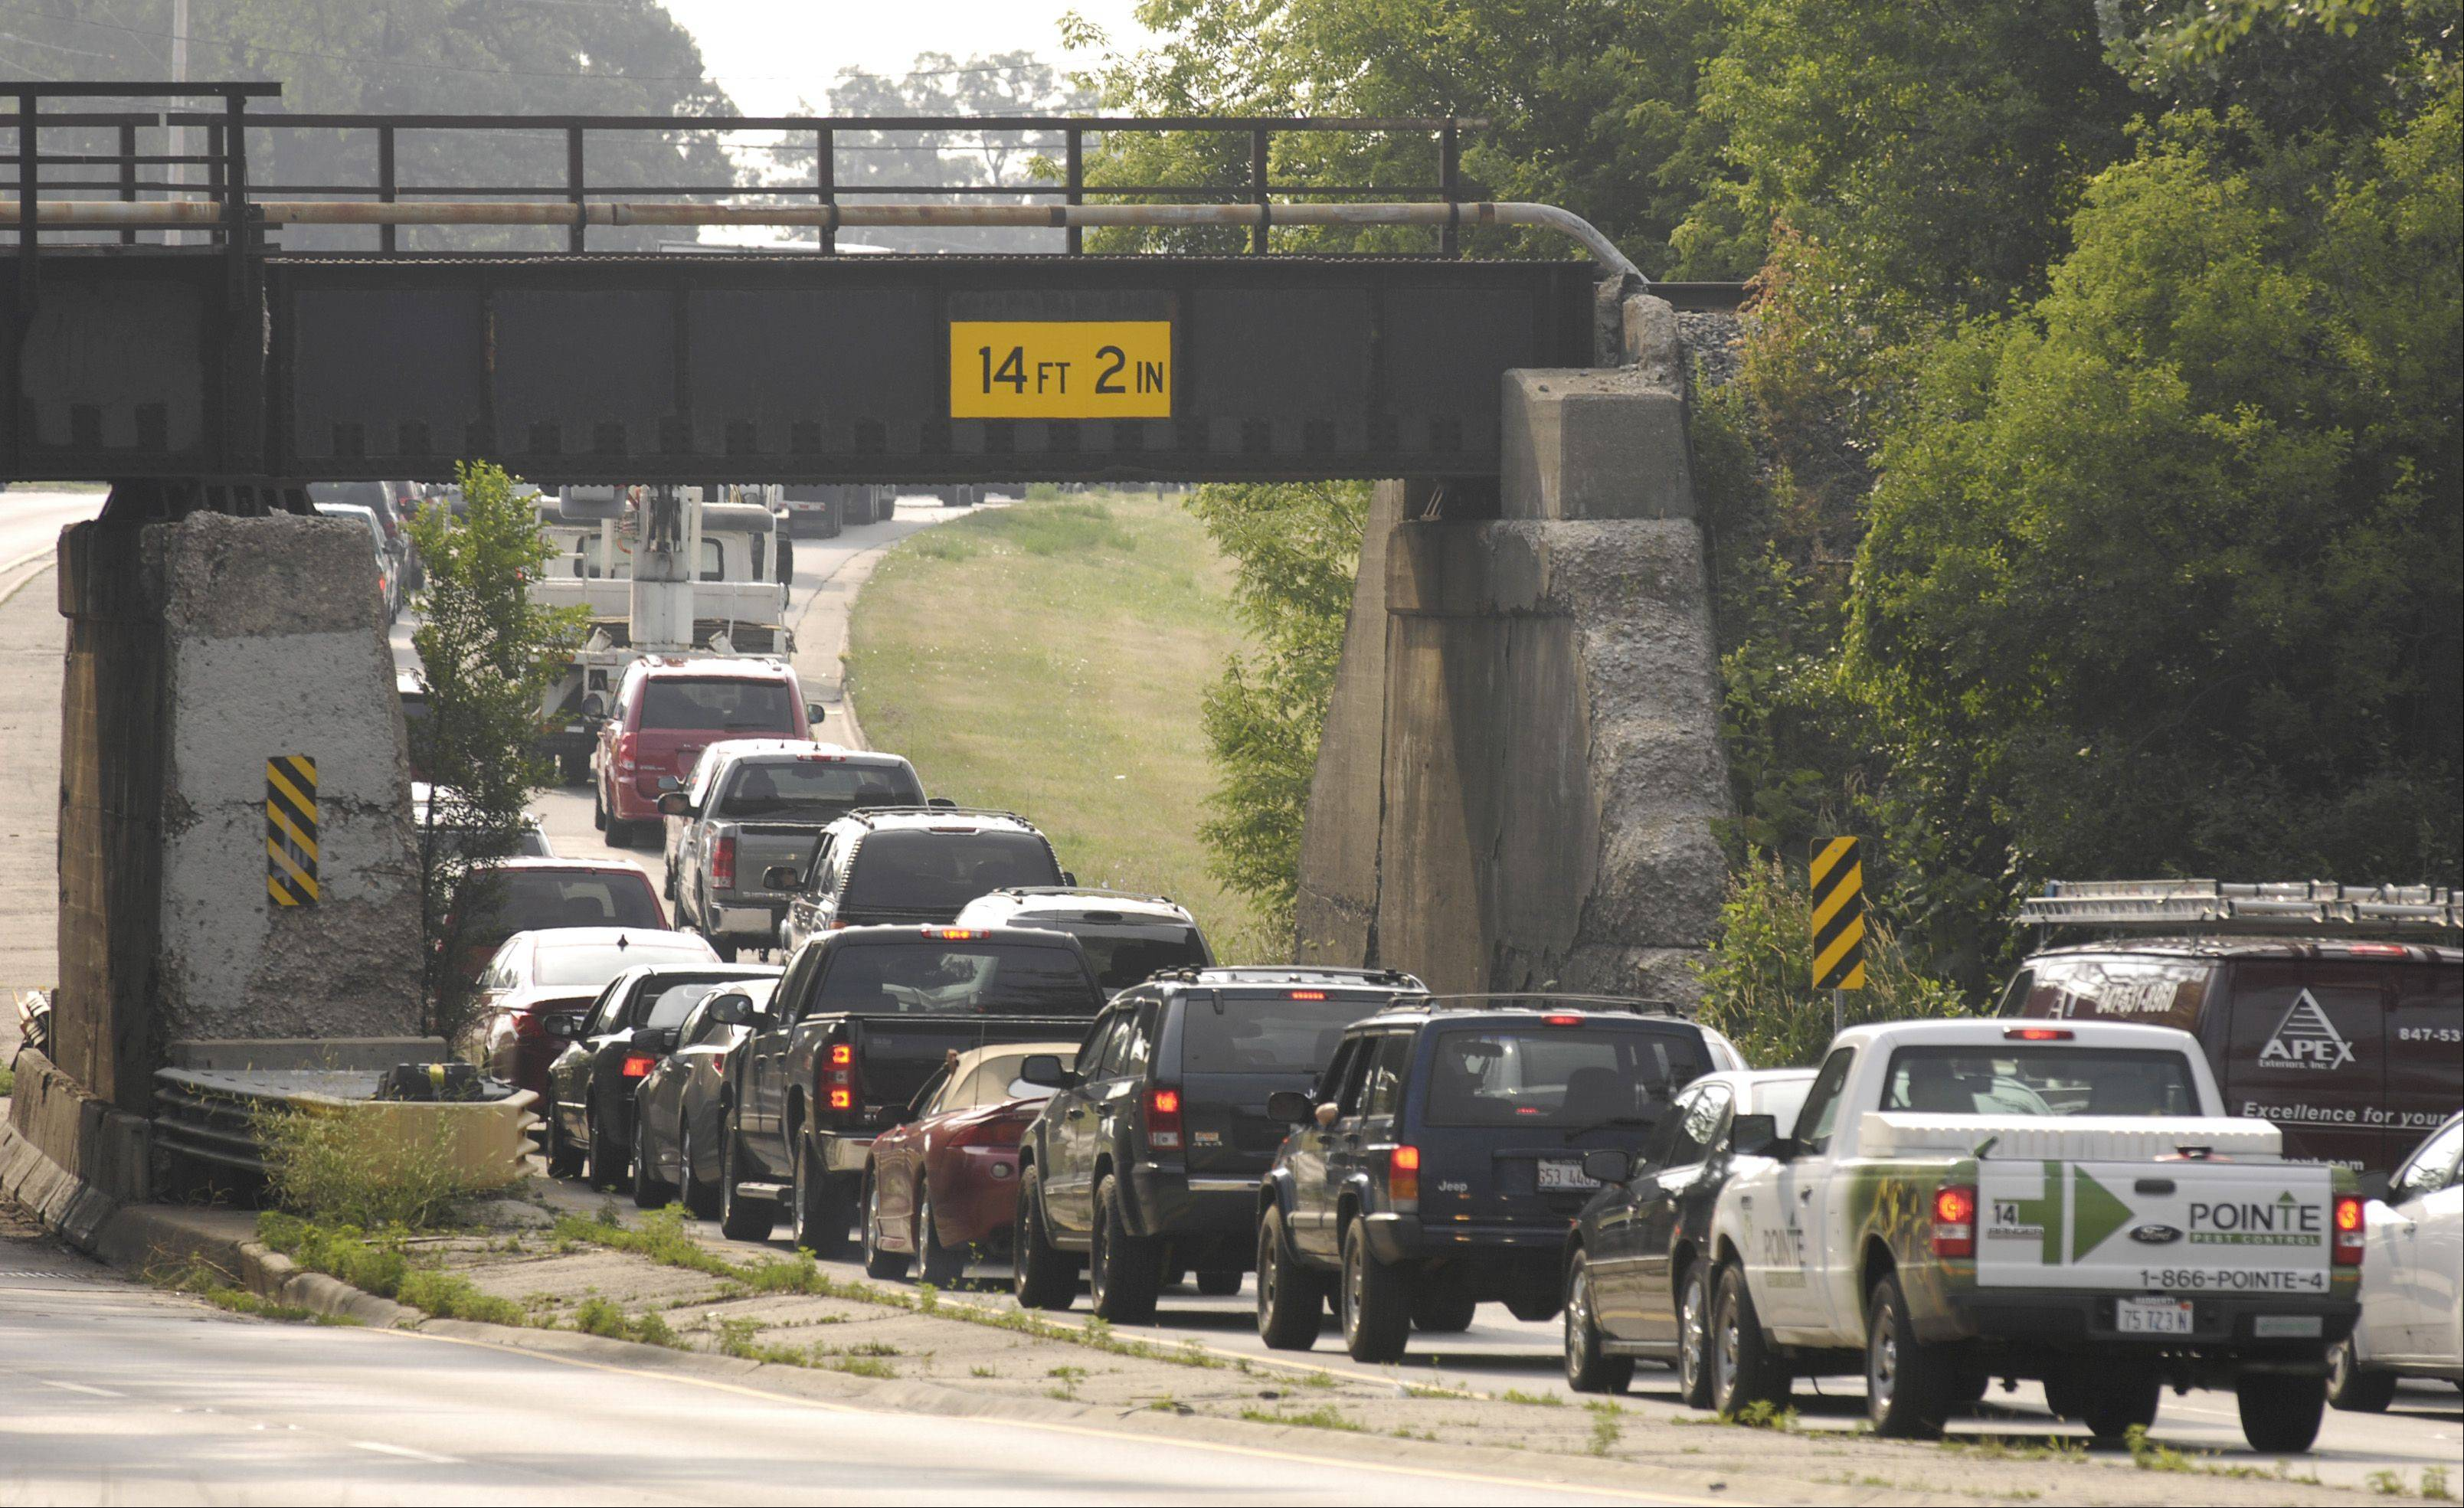 Roosevelt Road in West Chicago is backed up Monday due to power outages in the area that put the traffic light at Joliet Street out of service. The Sunday afternoon storm that rolled through DuPage County downed trees, chimneys and cut power to tens of thousands in the Chicago area.